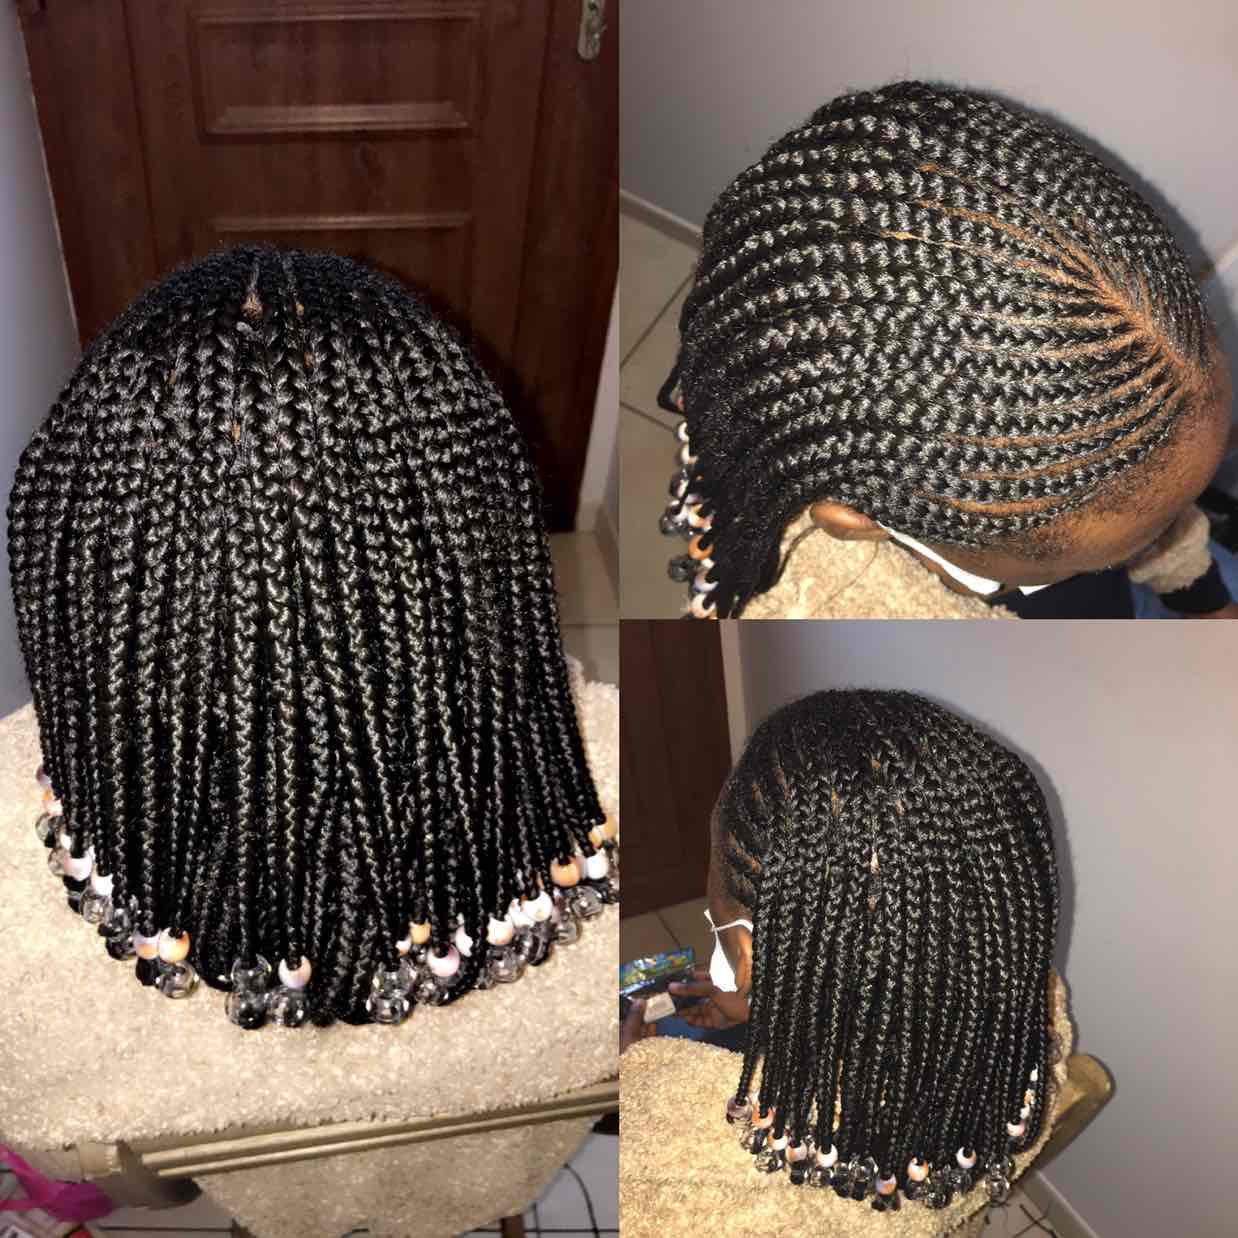 salon de coiffure afro tresse tresses box braids crochet braids vanilles tissages paris 75 77 78 91 92 93 94 95 SWKIHAPM